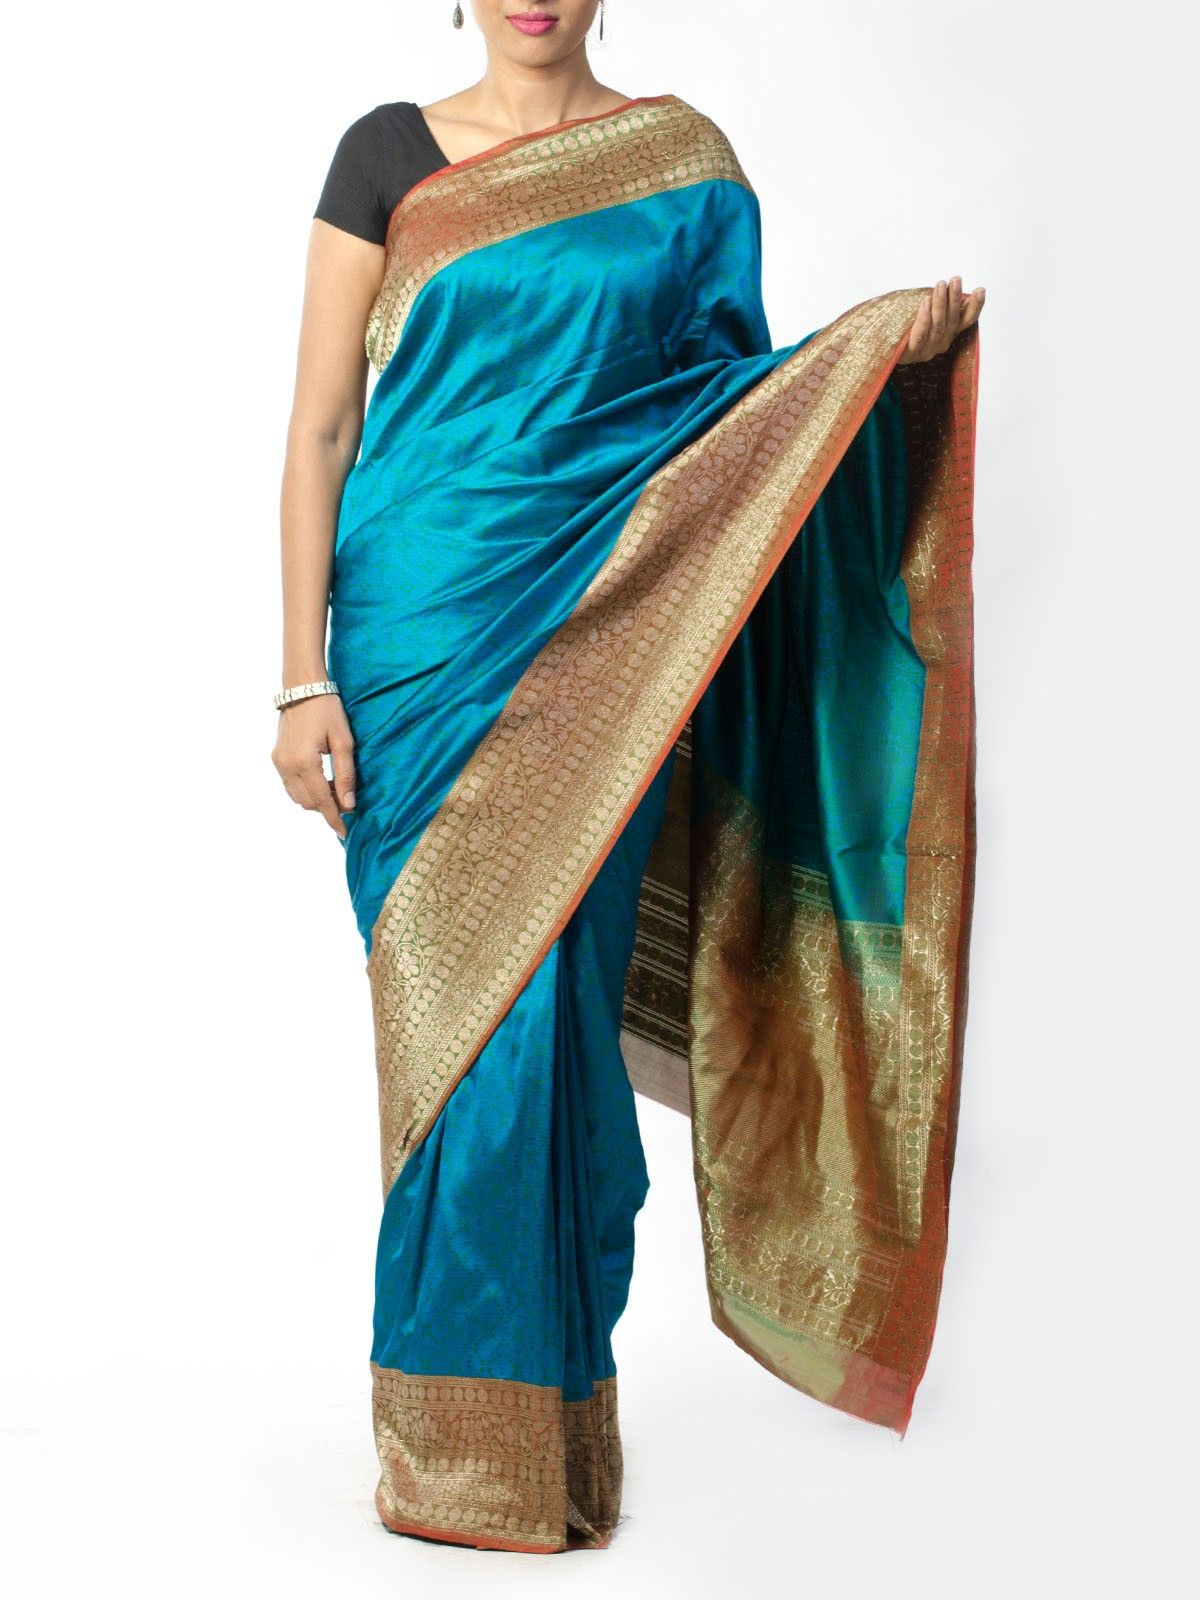 Blue Banarsi Saree with Zari Border